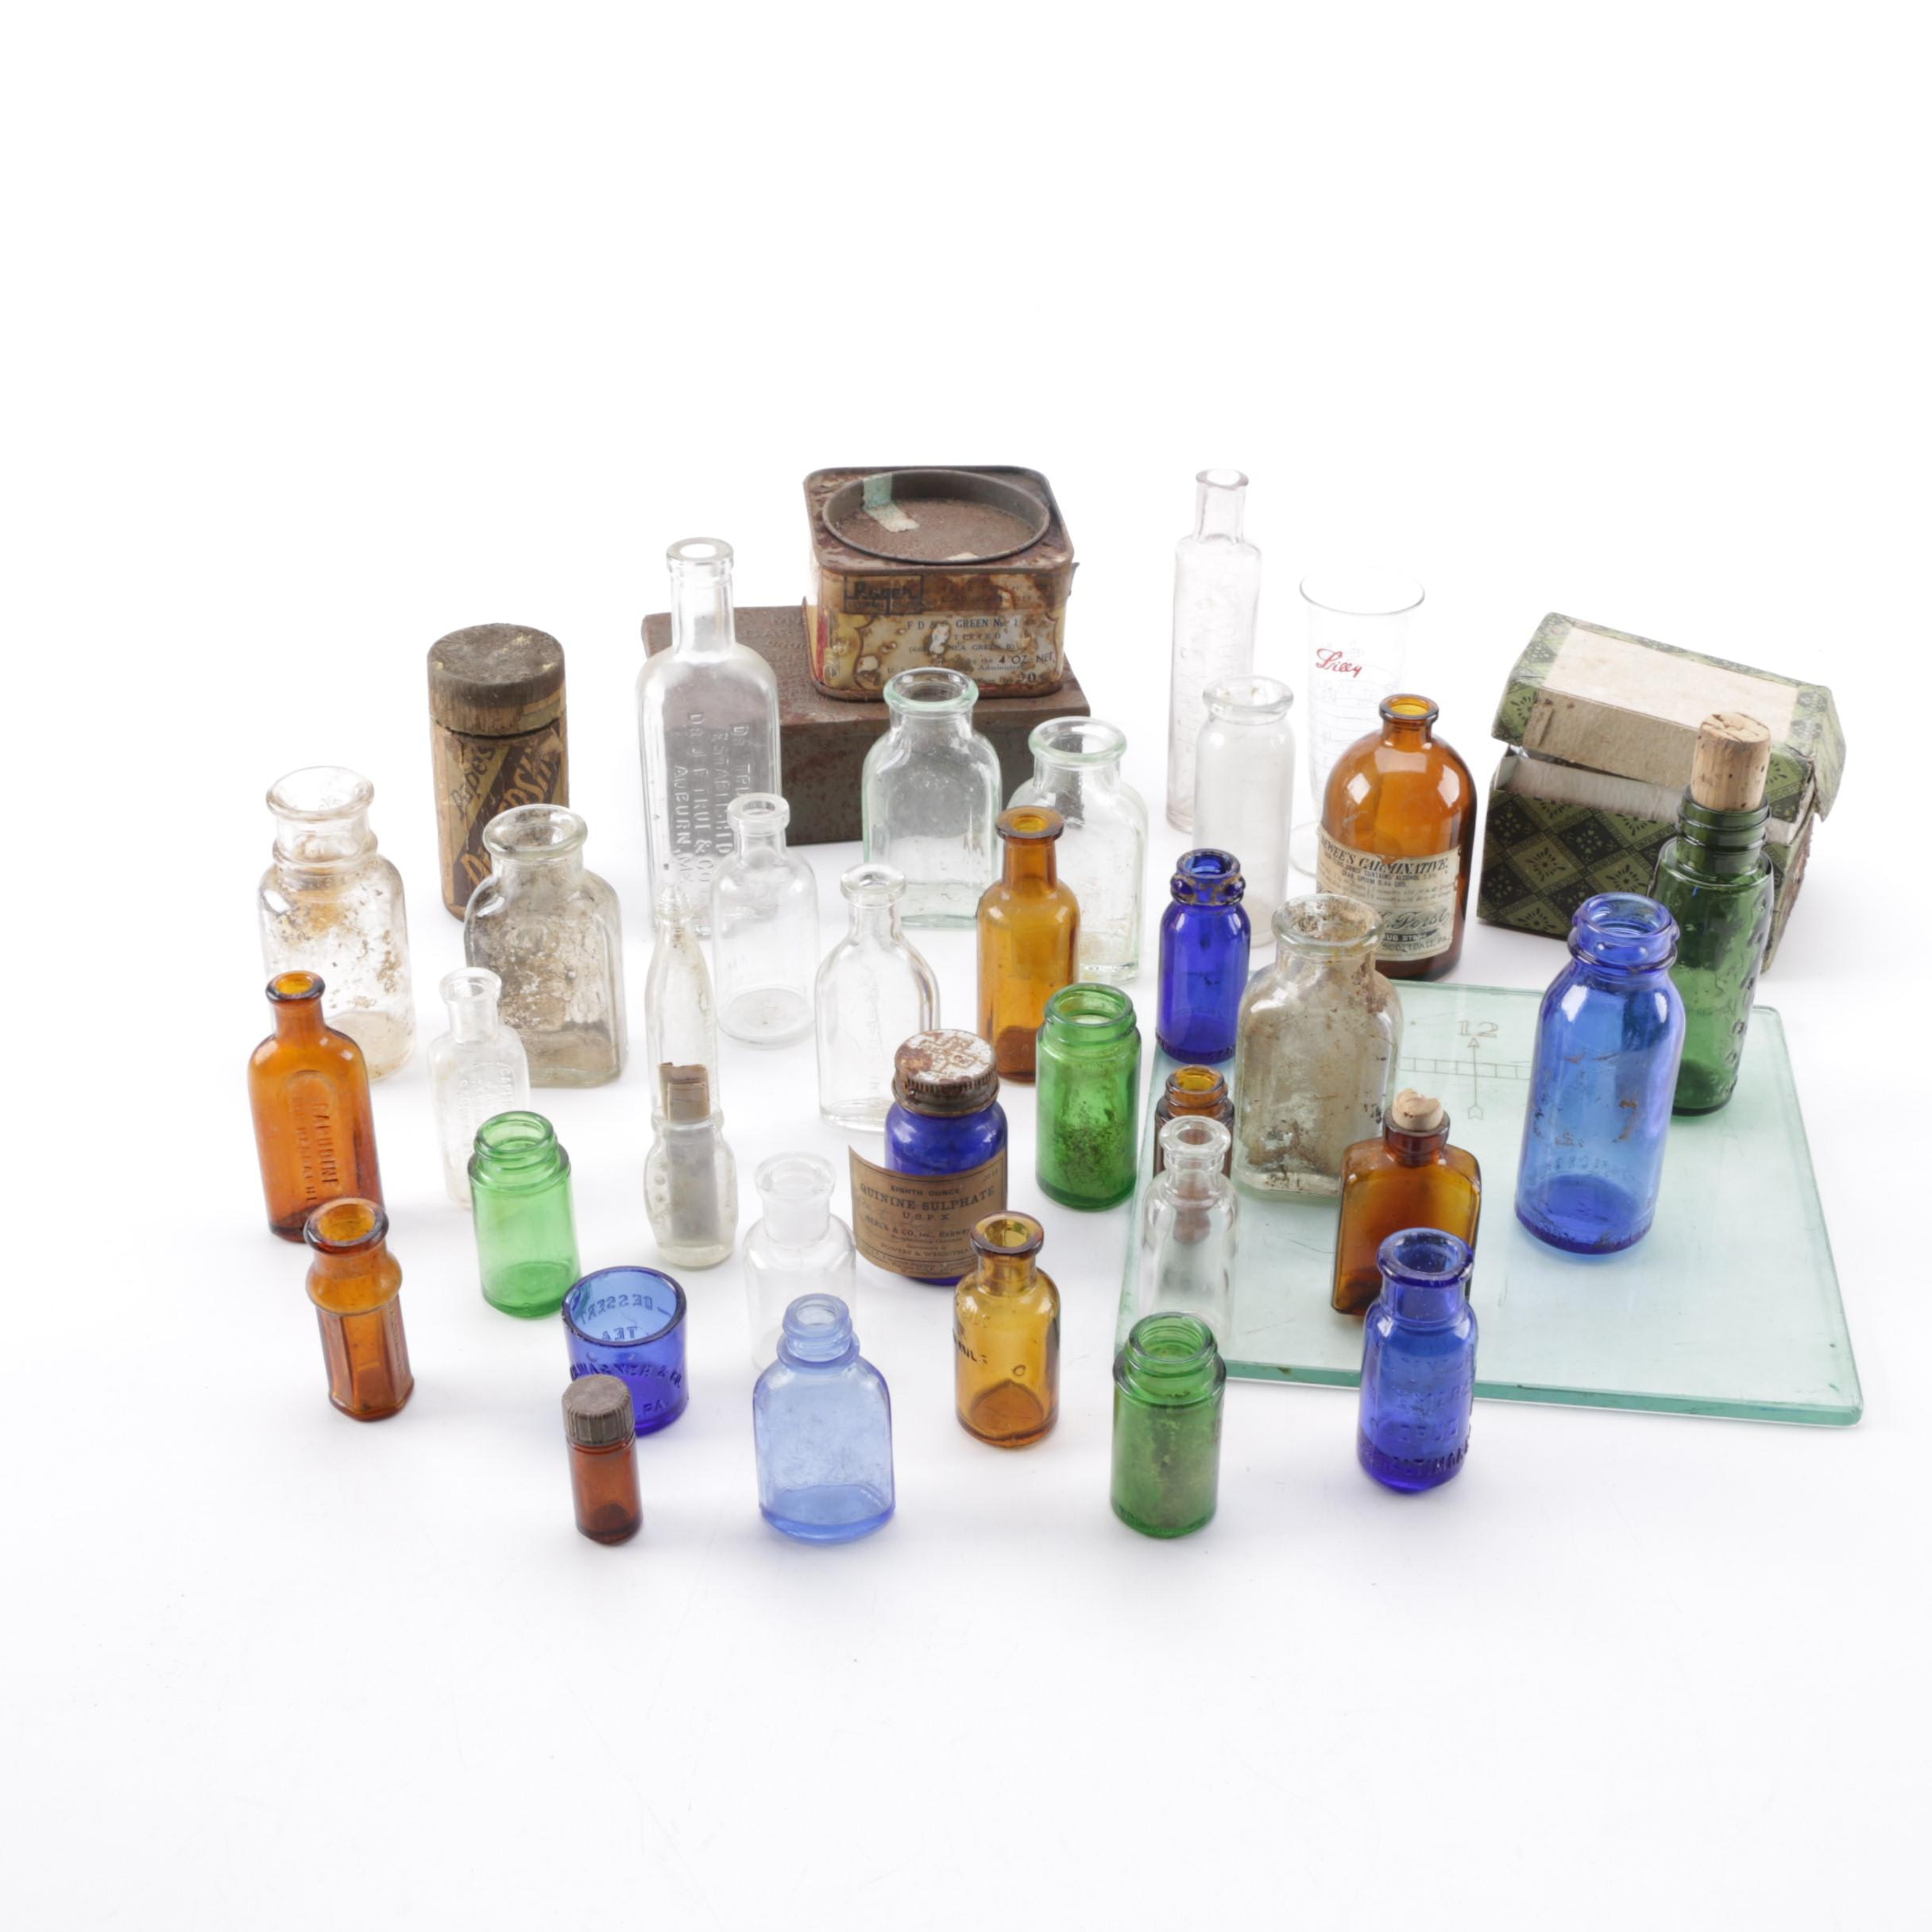 Assortment of Glass Bottles and Metal Tins